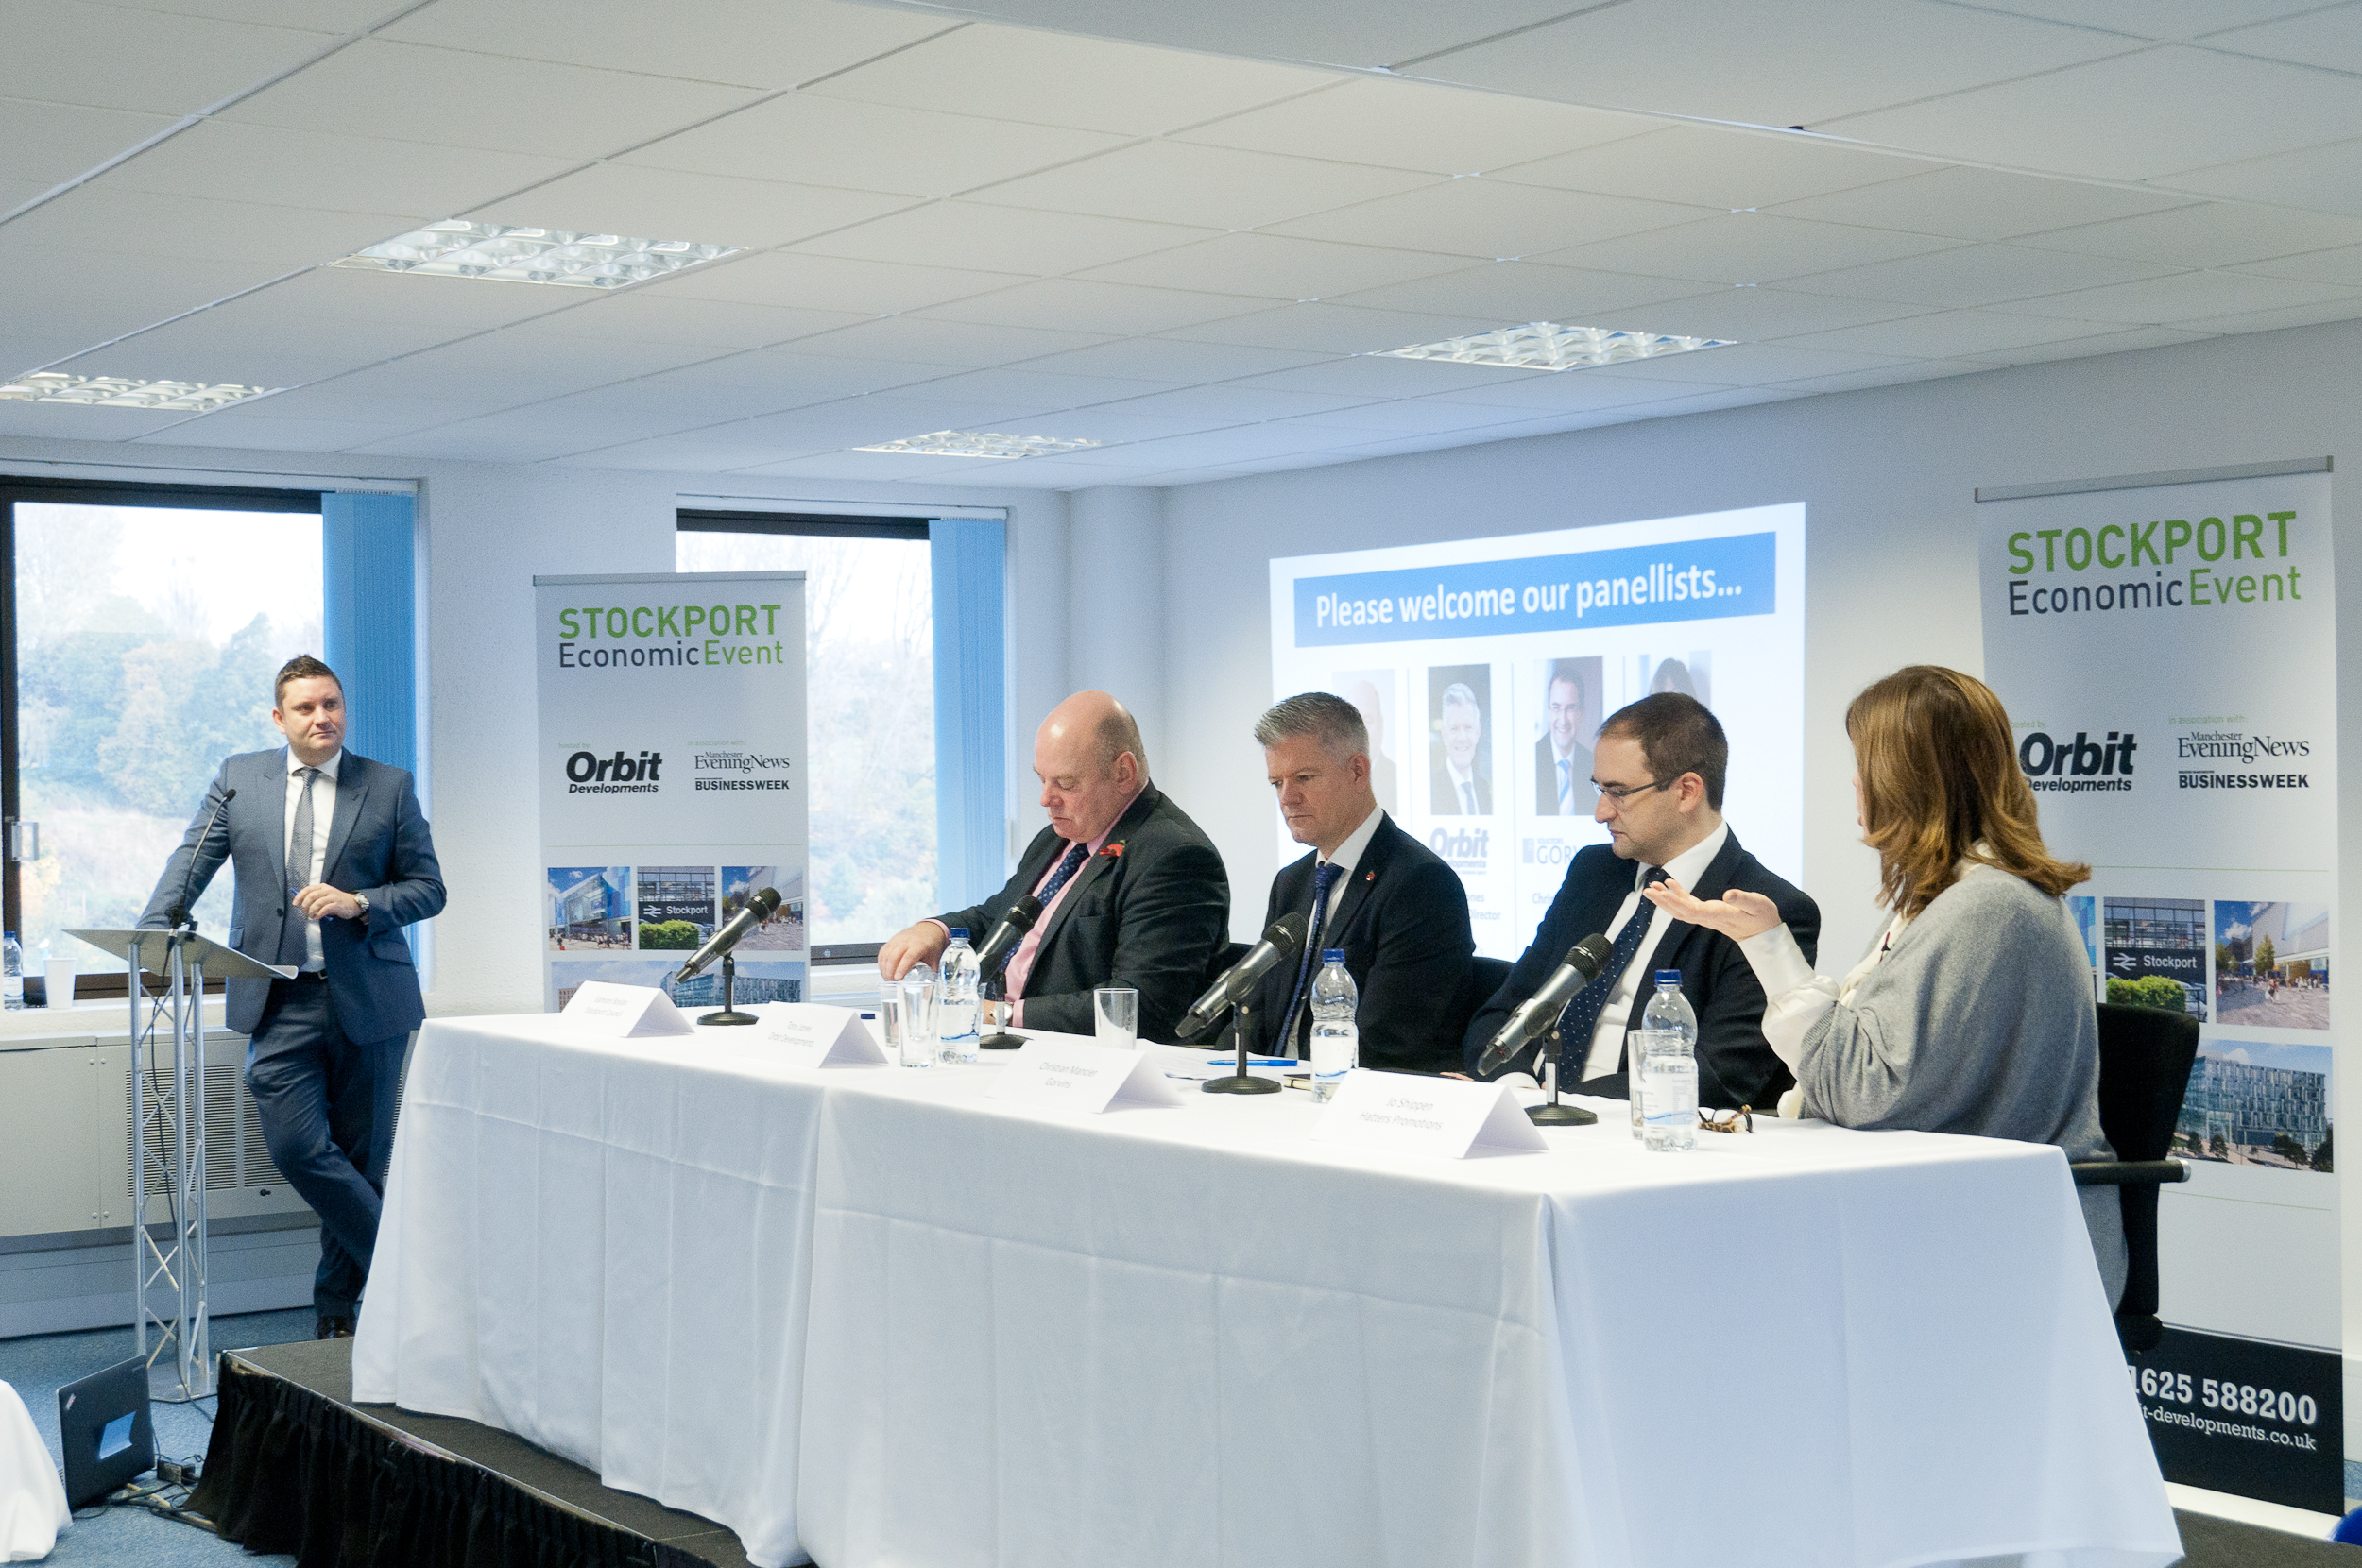 Adam Jupp from the Manchester Evening News posed questions to our panel of experts at the Stockport Economic Breakfast